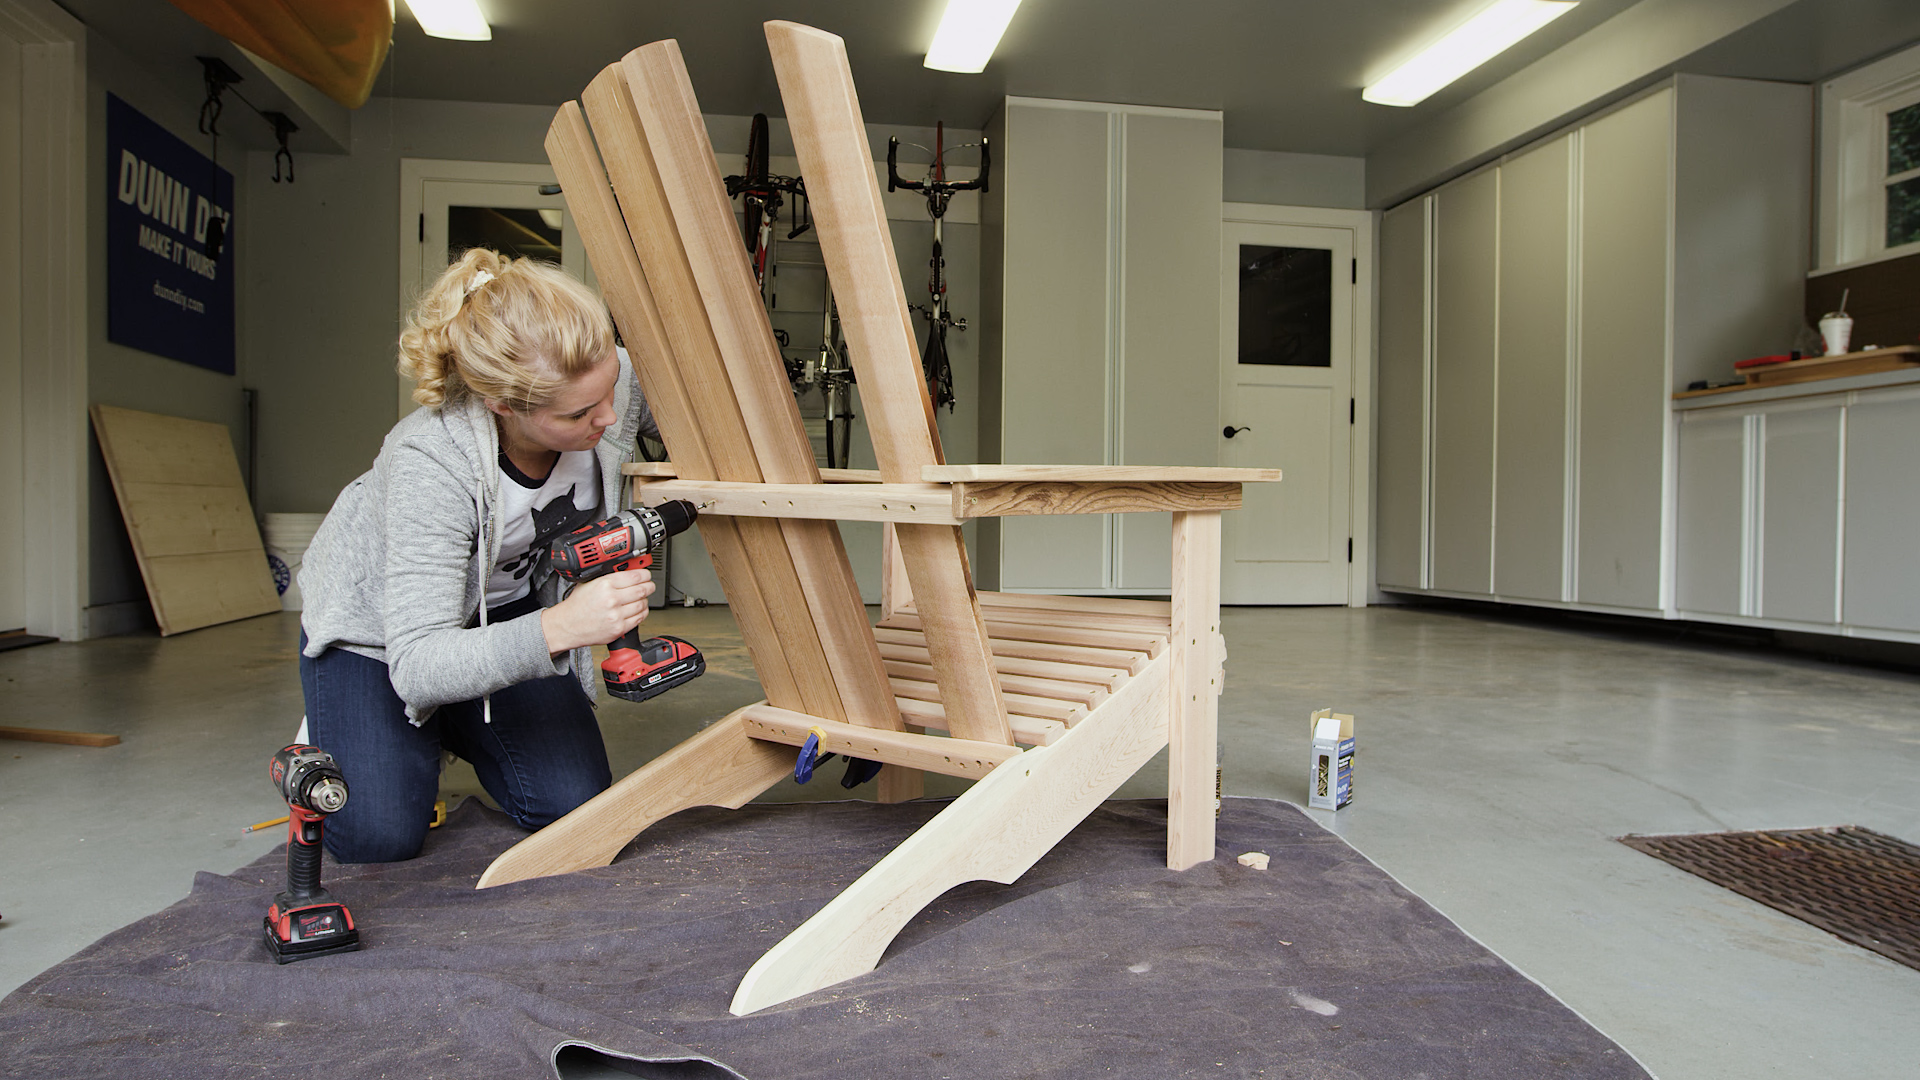 How to Build an Adirondack Chair Home Improvement Projects to